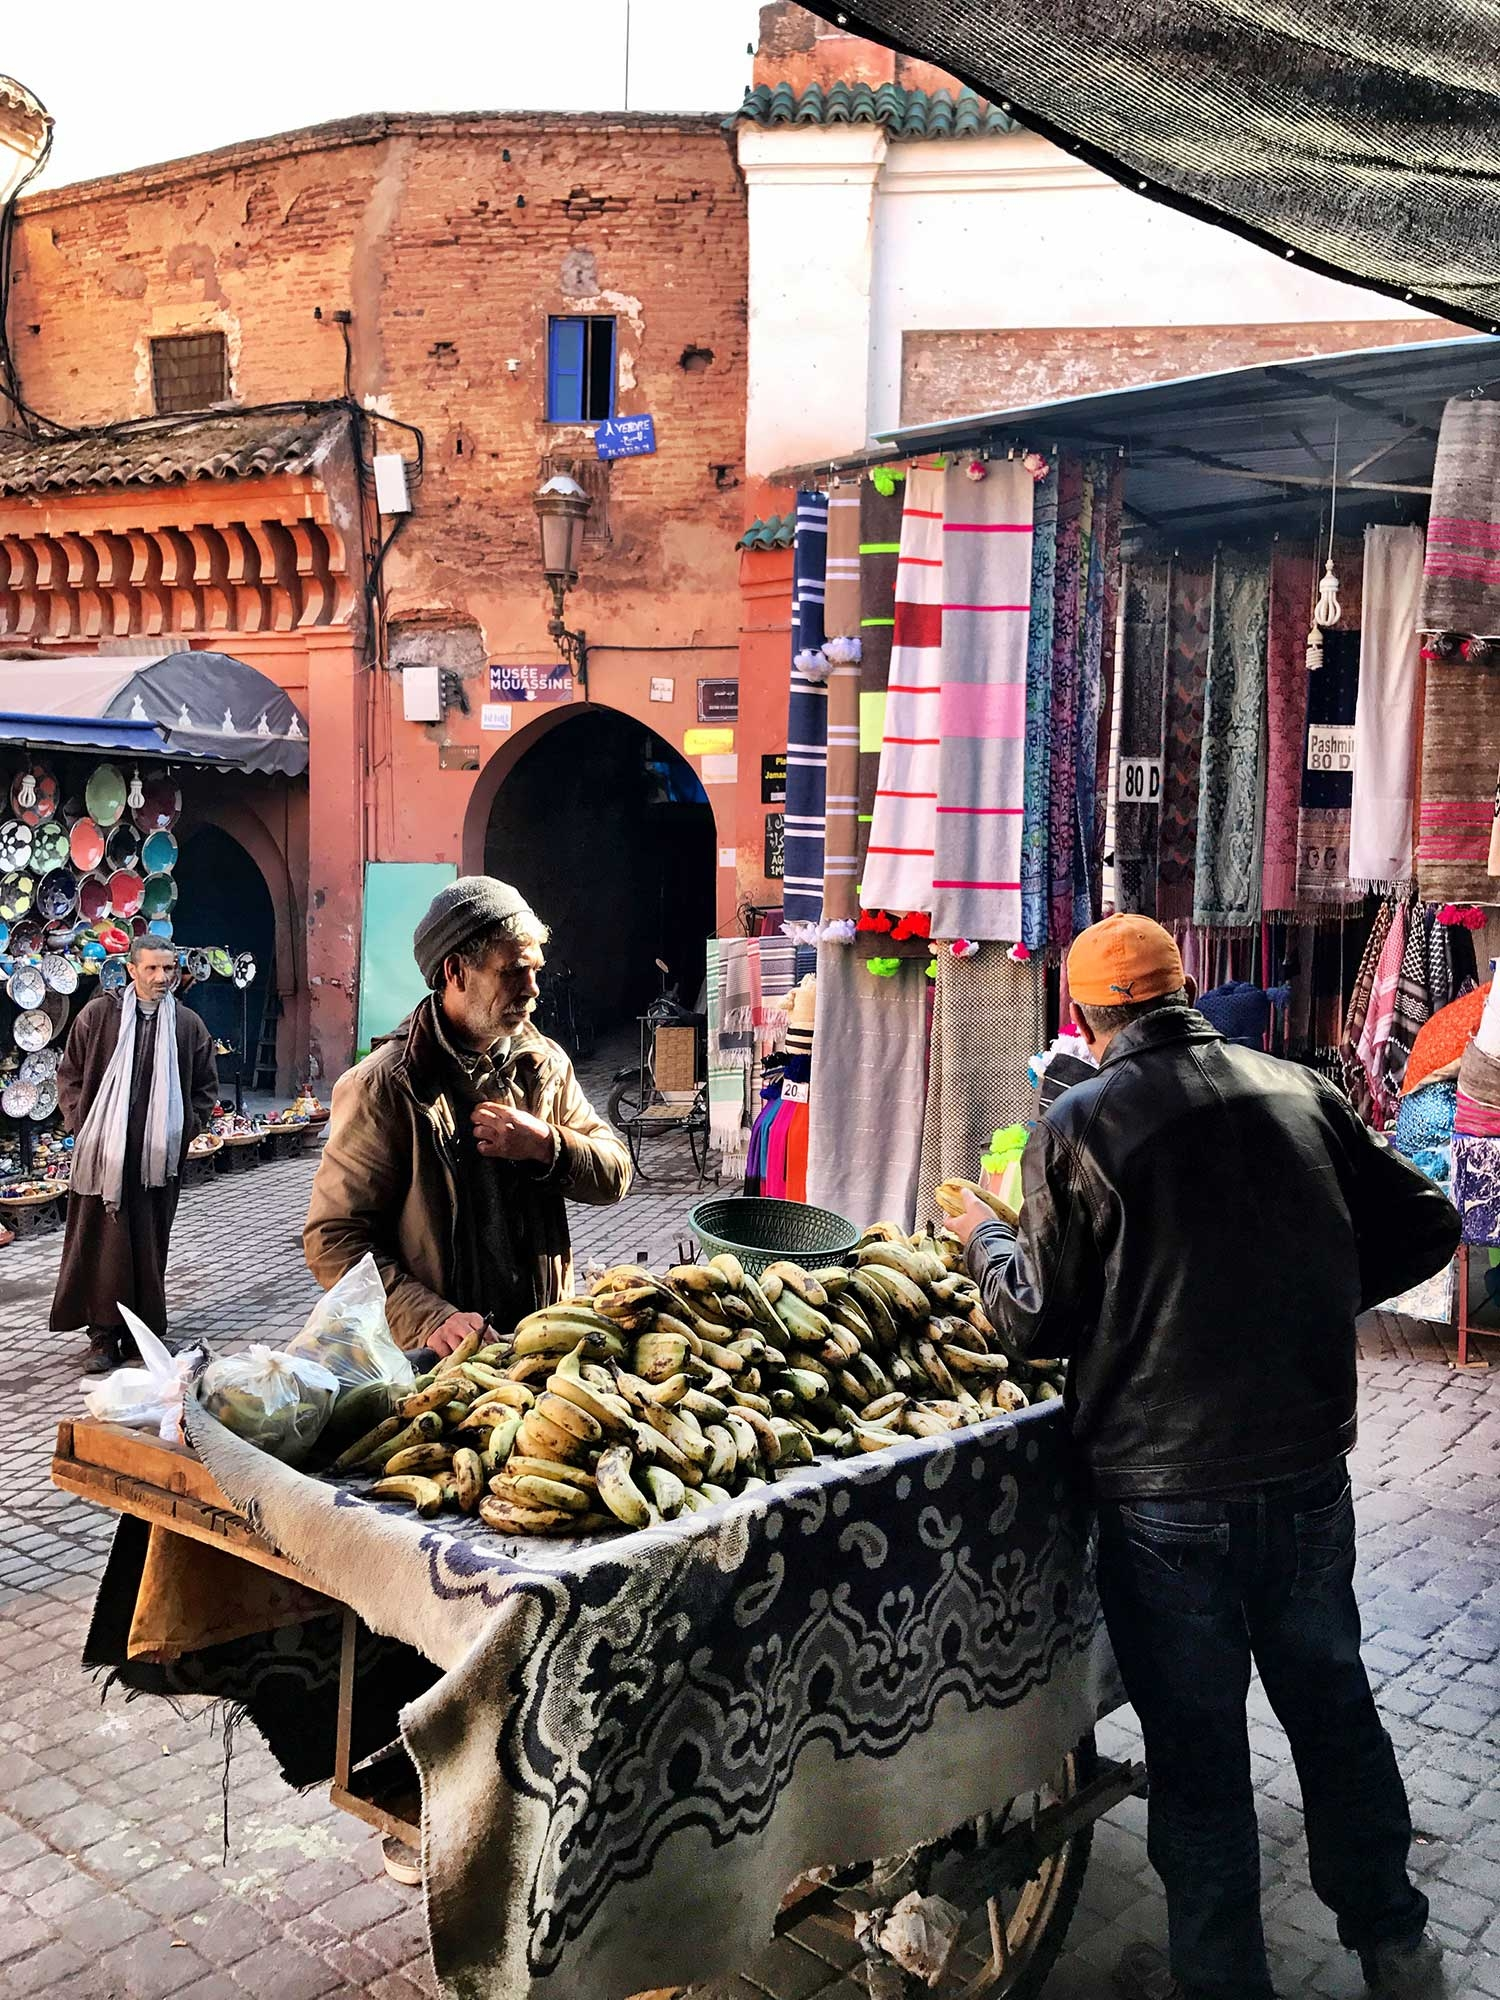 A man sells bananas on a large table in the laneways of the souks